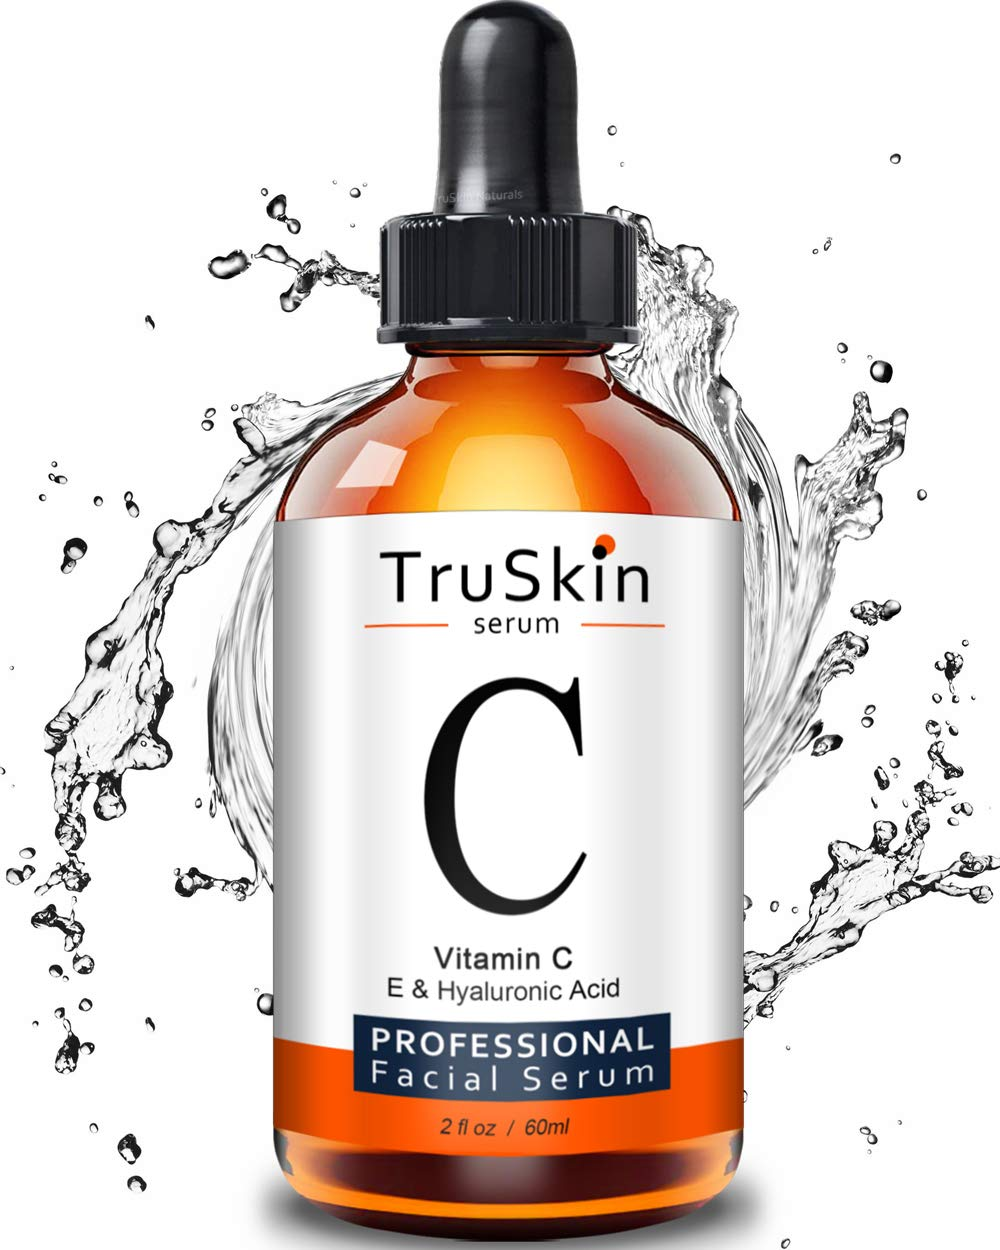 Beauty Shopping TruSkin Vitamin C Serum for Face, Topical Facial Serum with Hyaluronic Acid &